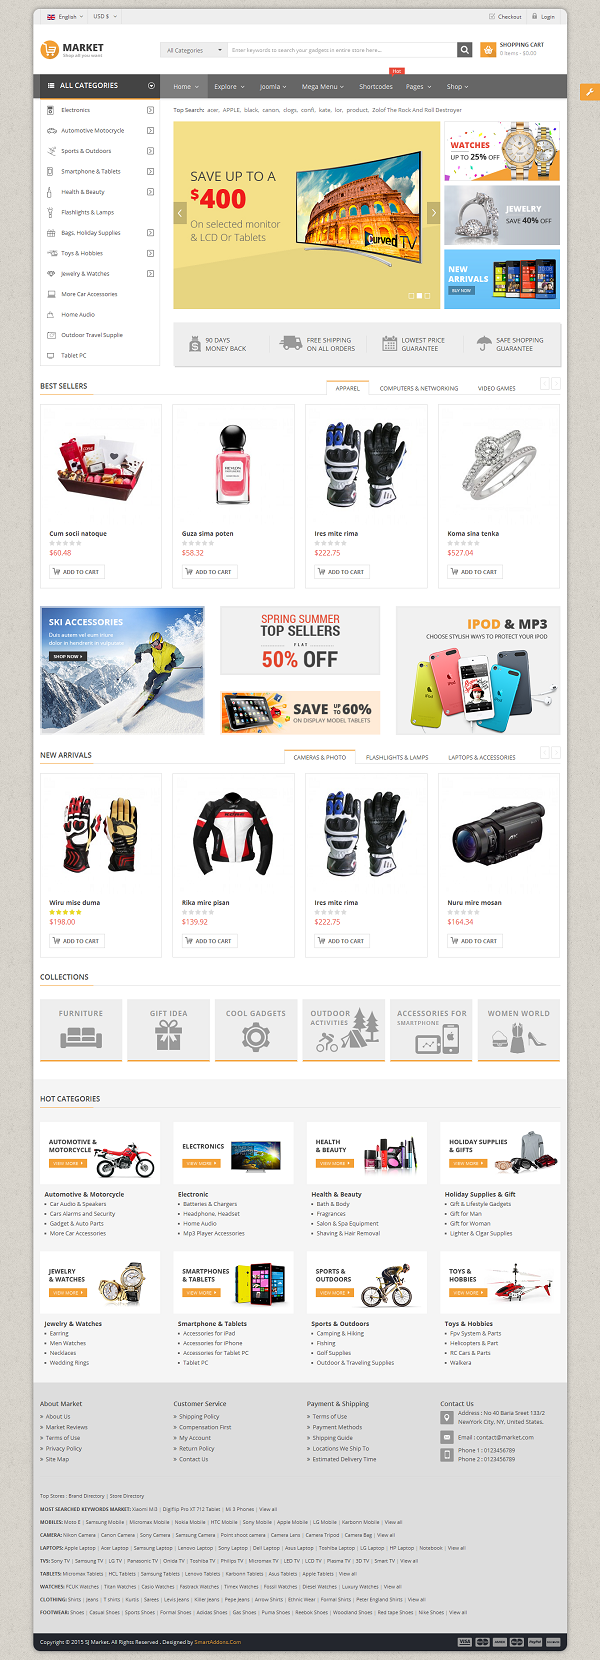 SJ Market - Responsive Joomla eCommerce Template - 11_rounded-layout.png